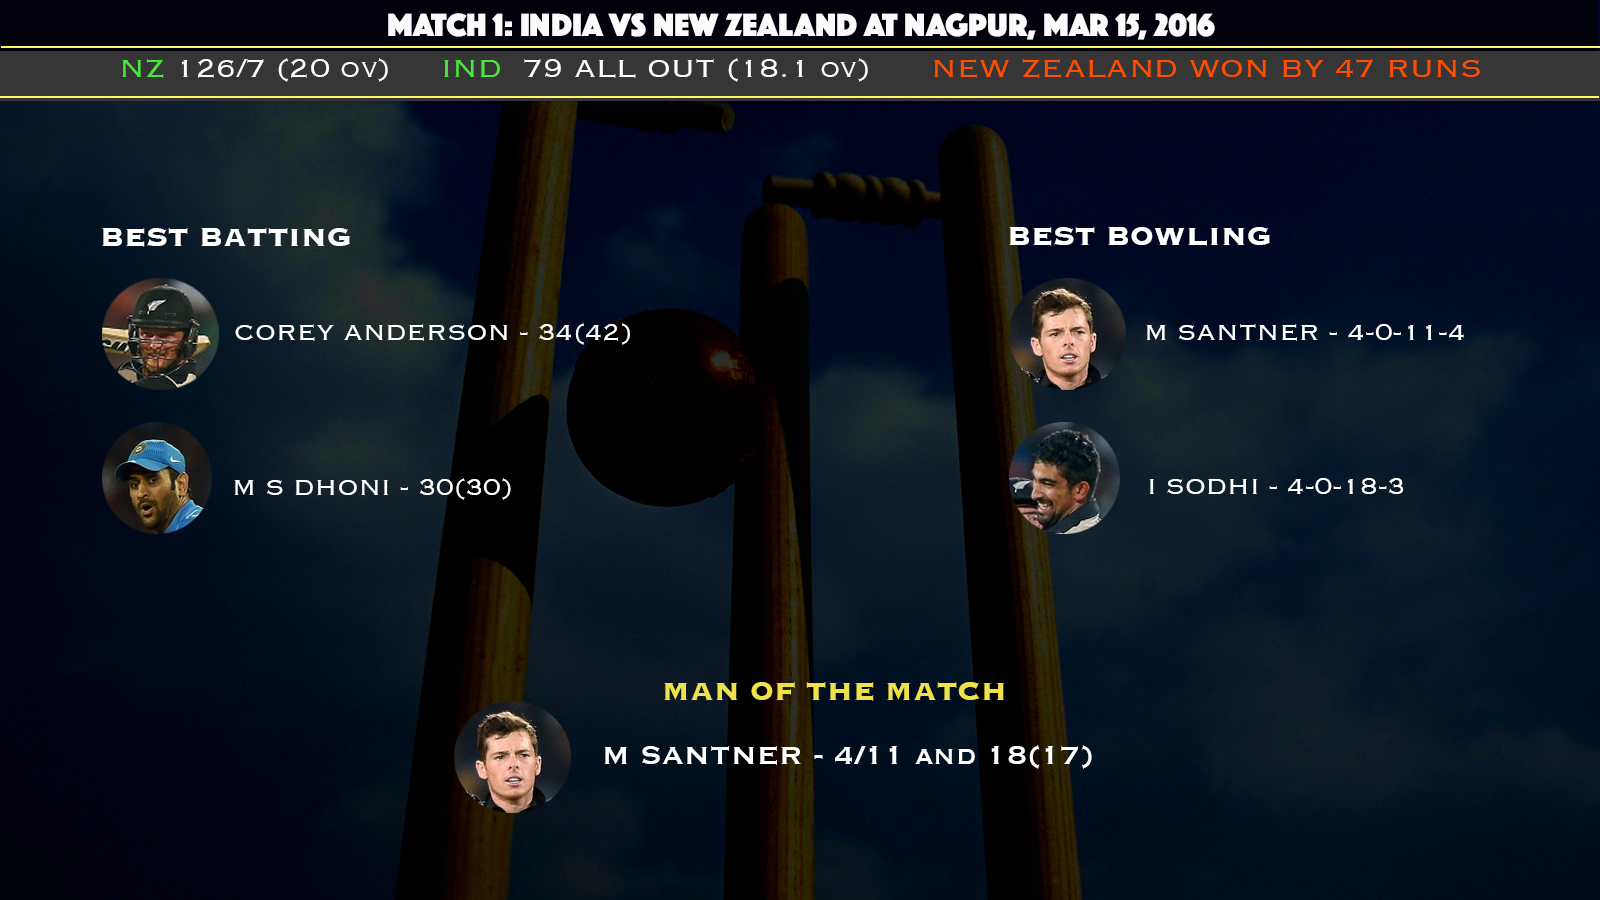 india vs new zealand world cup t20 match at Nagpur